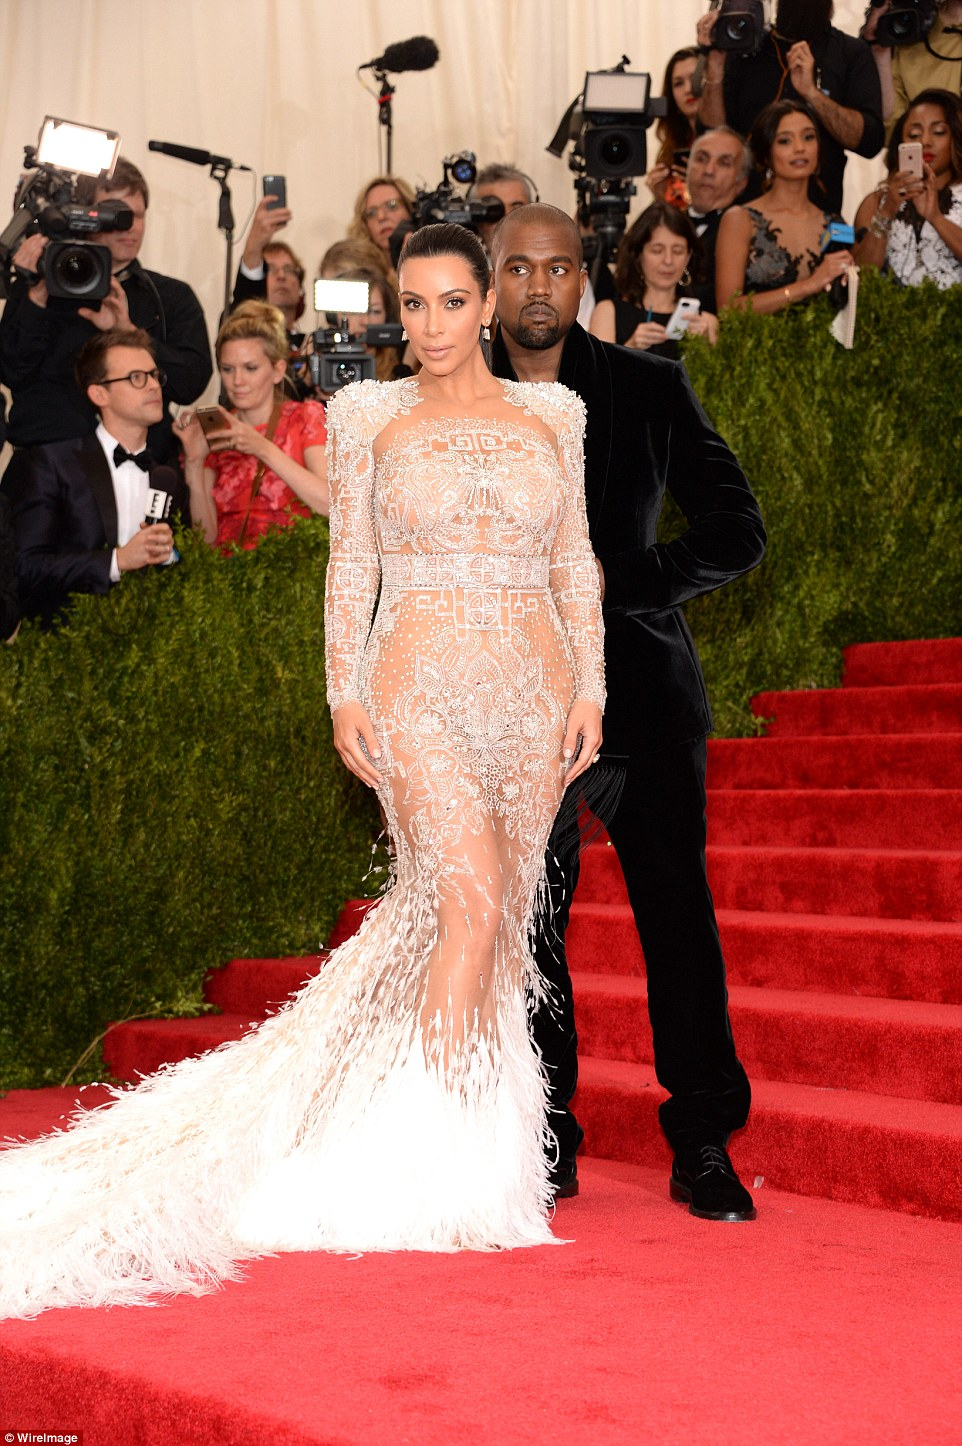 Best assets forward: The 34-year-old displayed her heavenly figure on Monday night at the Anna Wintour hosted event in a sheer lace gown, revealing she had forgone underwear for the evening